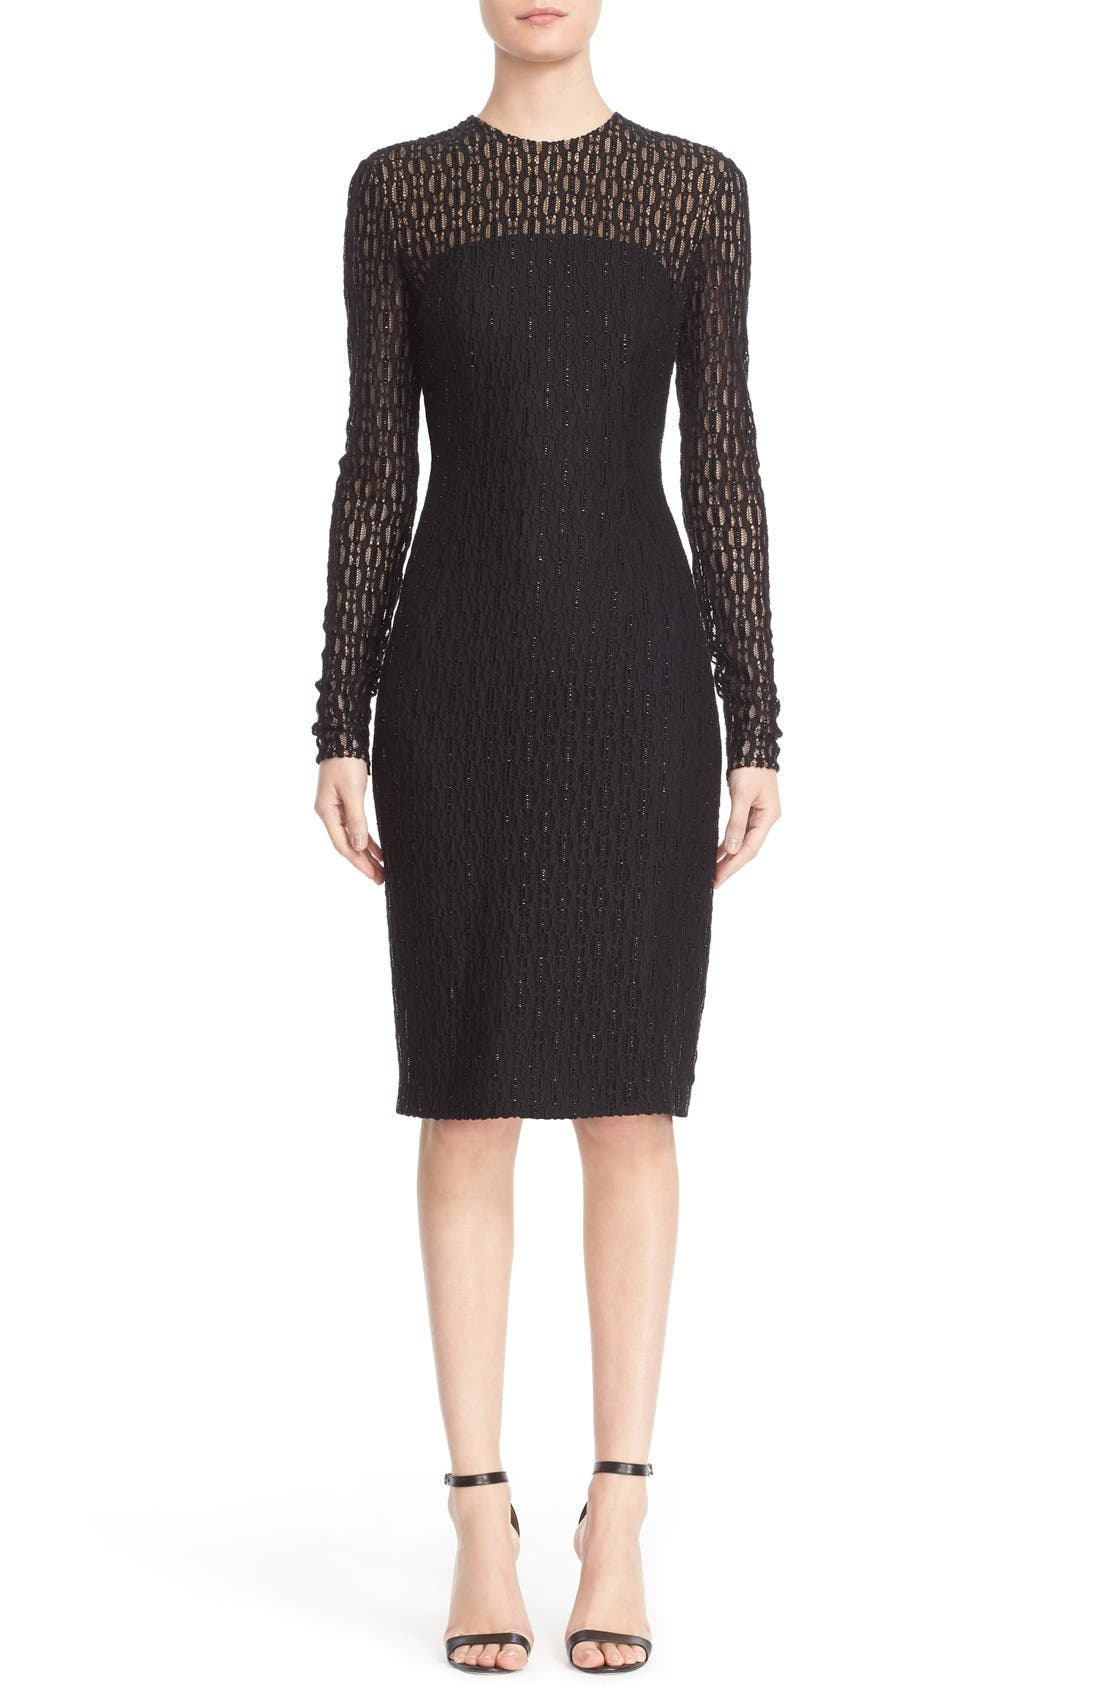 CARMEN MARC VALVO COUTURE Embellished Illusion Lace Knit